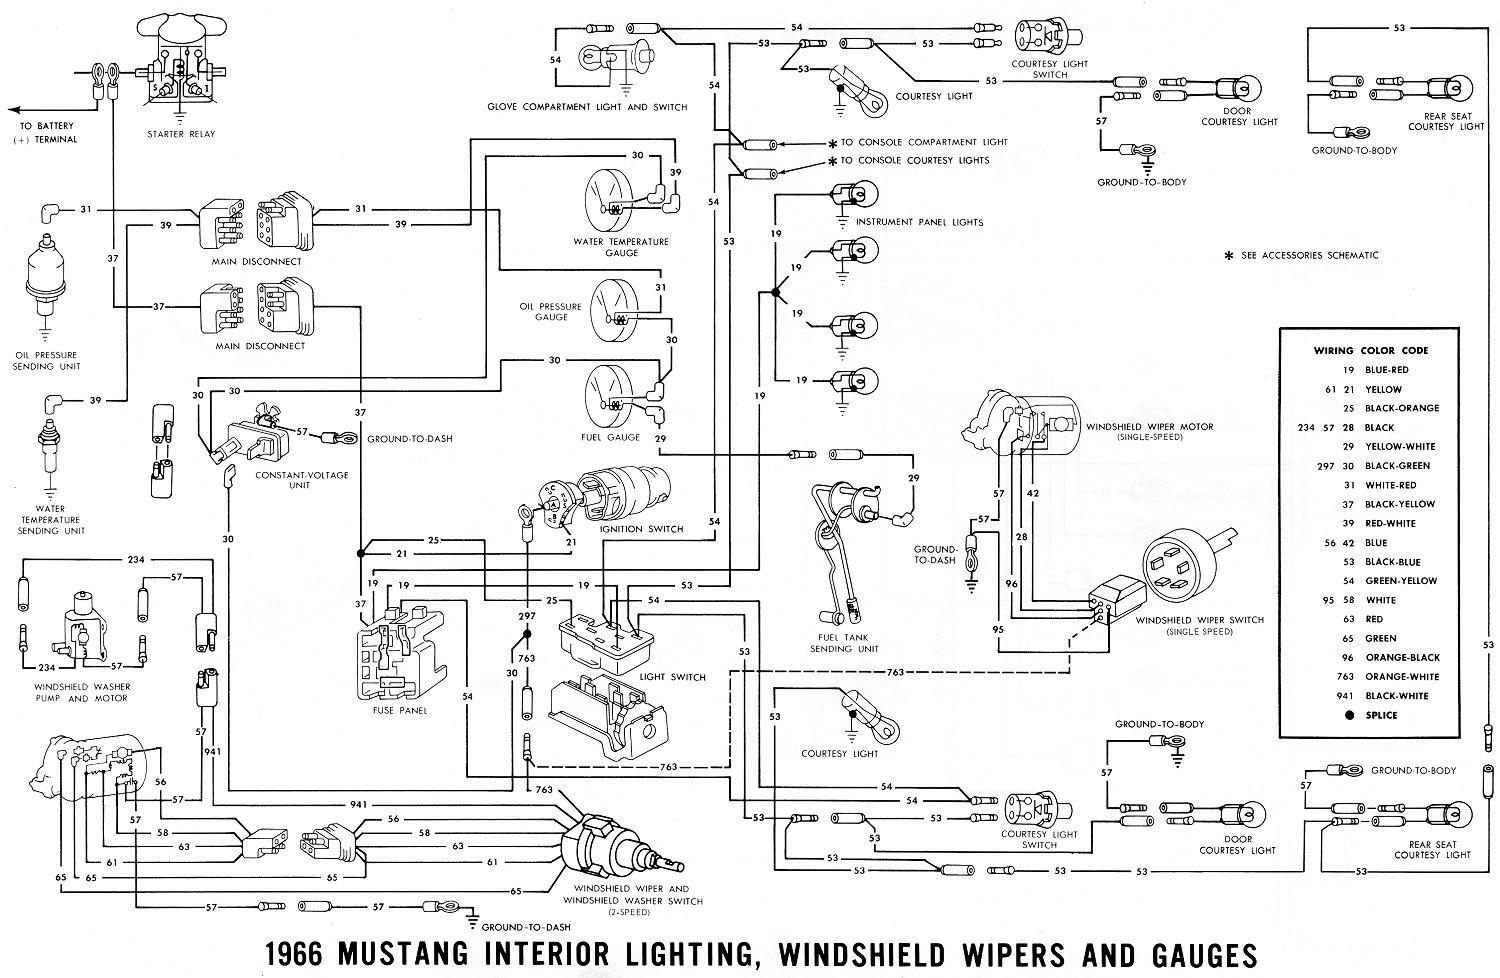 1970 ford mustang ignition switch wiring diagram wiring diagram 1970 Ford F100 Wiring Diagram 1970 ford f100 ignition switch wiring diagram 1970 ford f100 wiring diagram